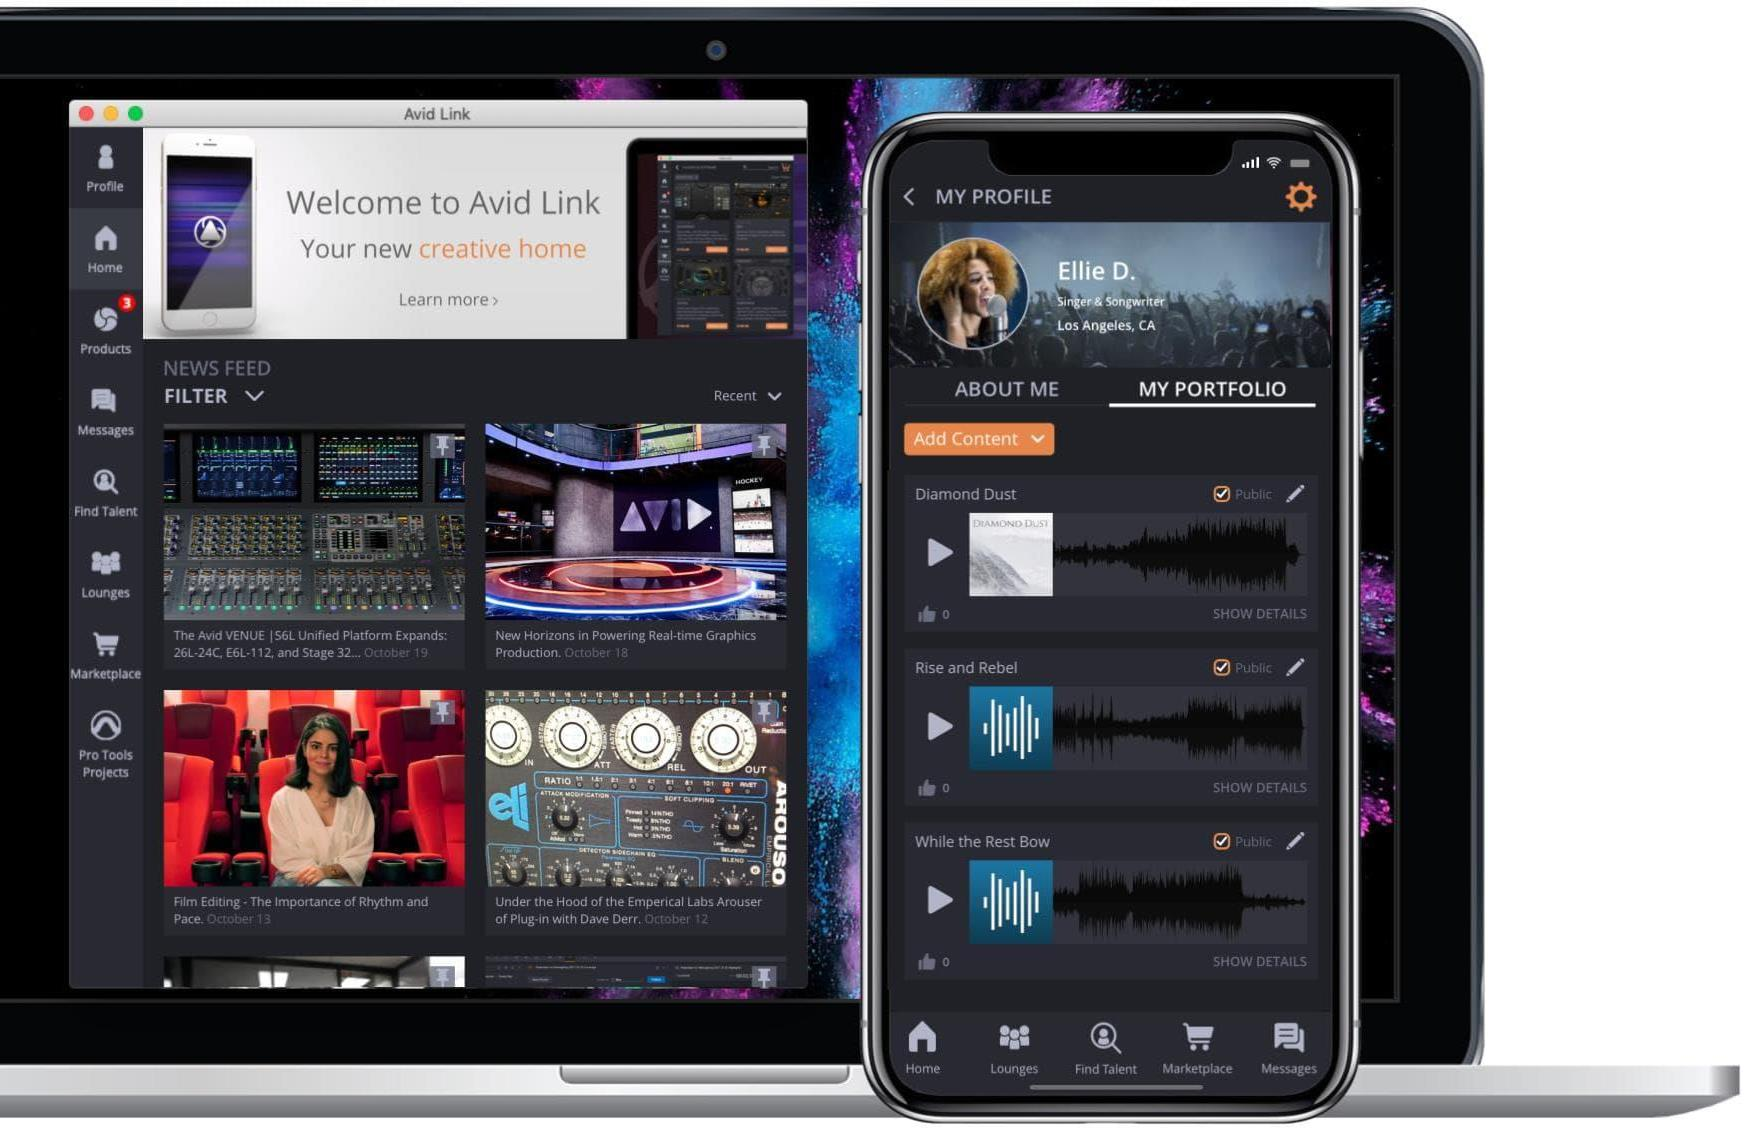 Avid Link interface displayed on a laptop and smartphone for music collaboration